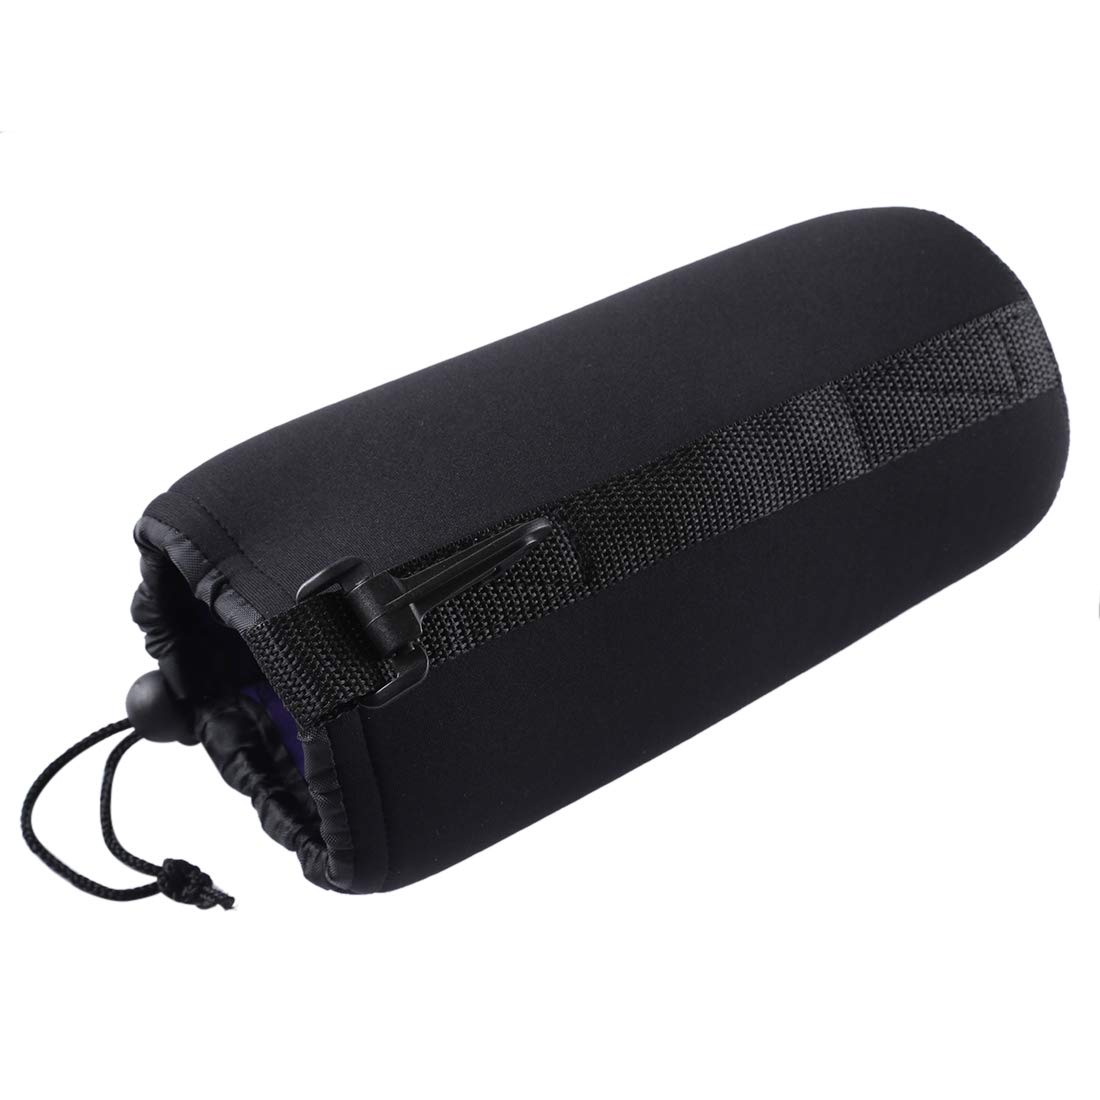 Size Neoprene SLR Camera Lens Carrying Bag Pouch Bag with Carabiner 10x22cm Durable